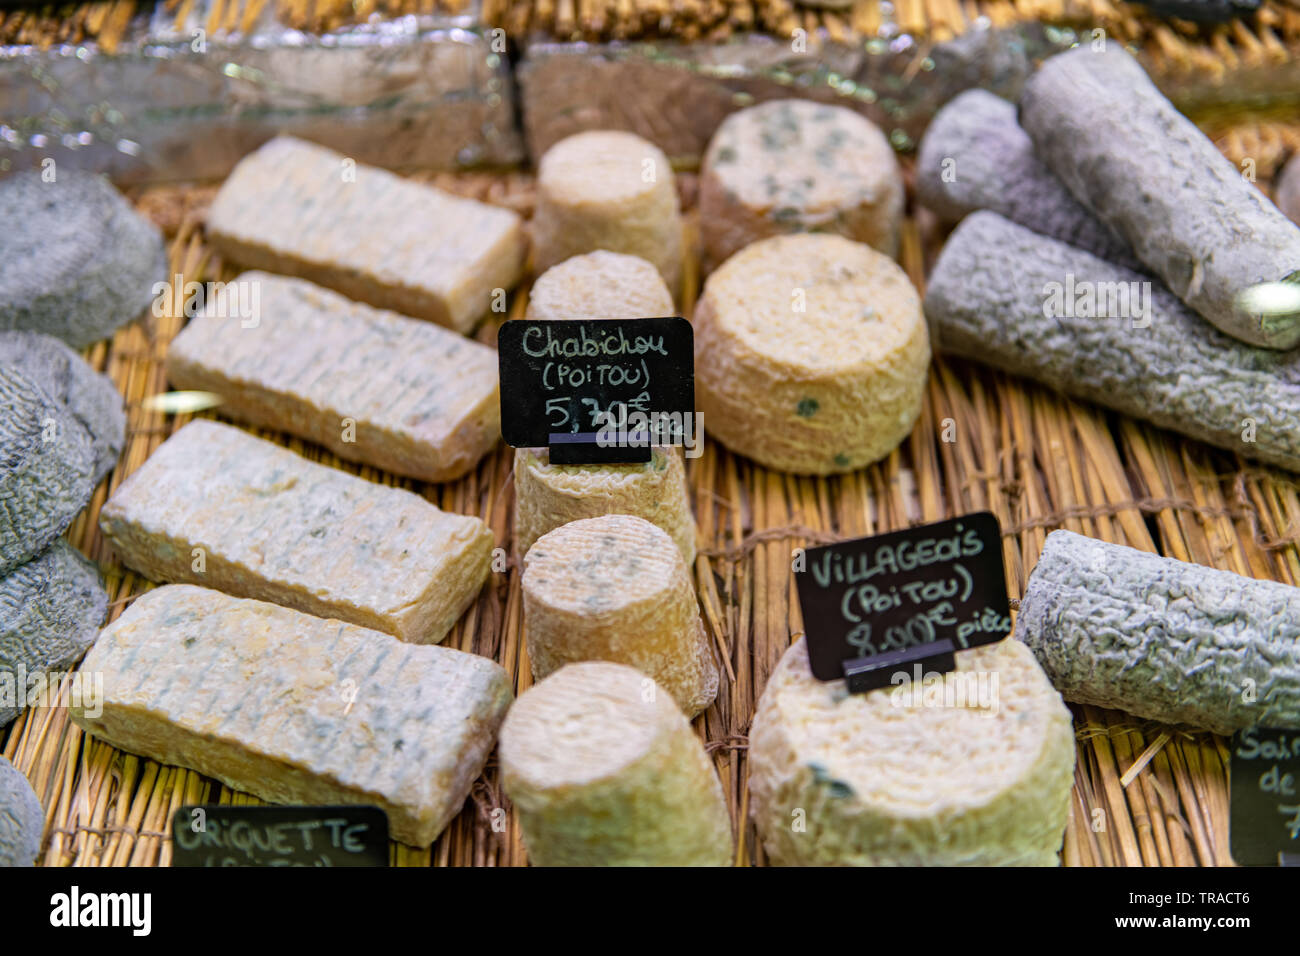 Selections of French Cheese at Farmer's Market in Libourne, France - Stock Image